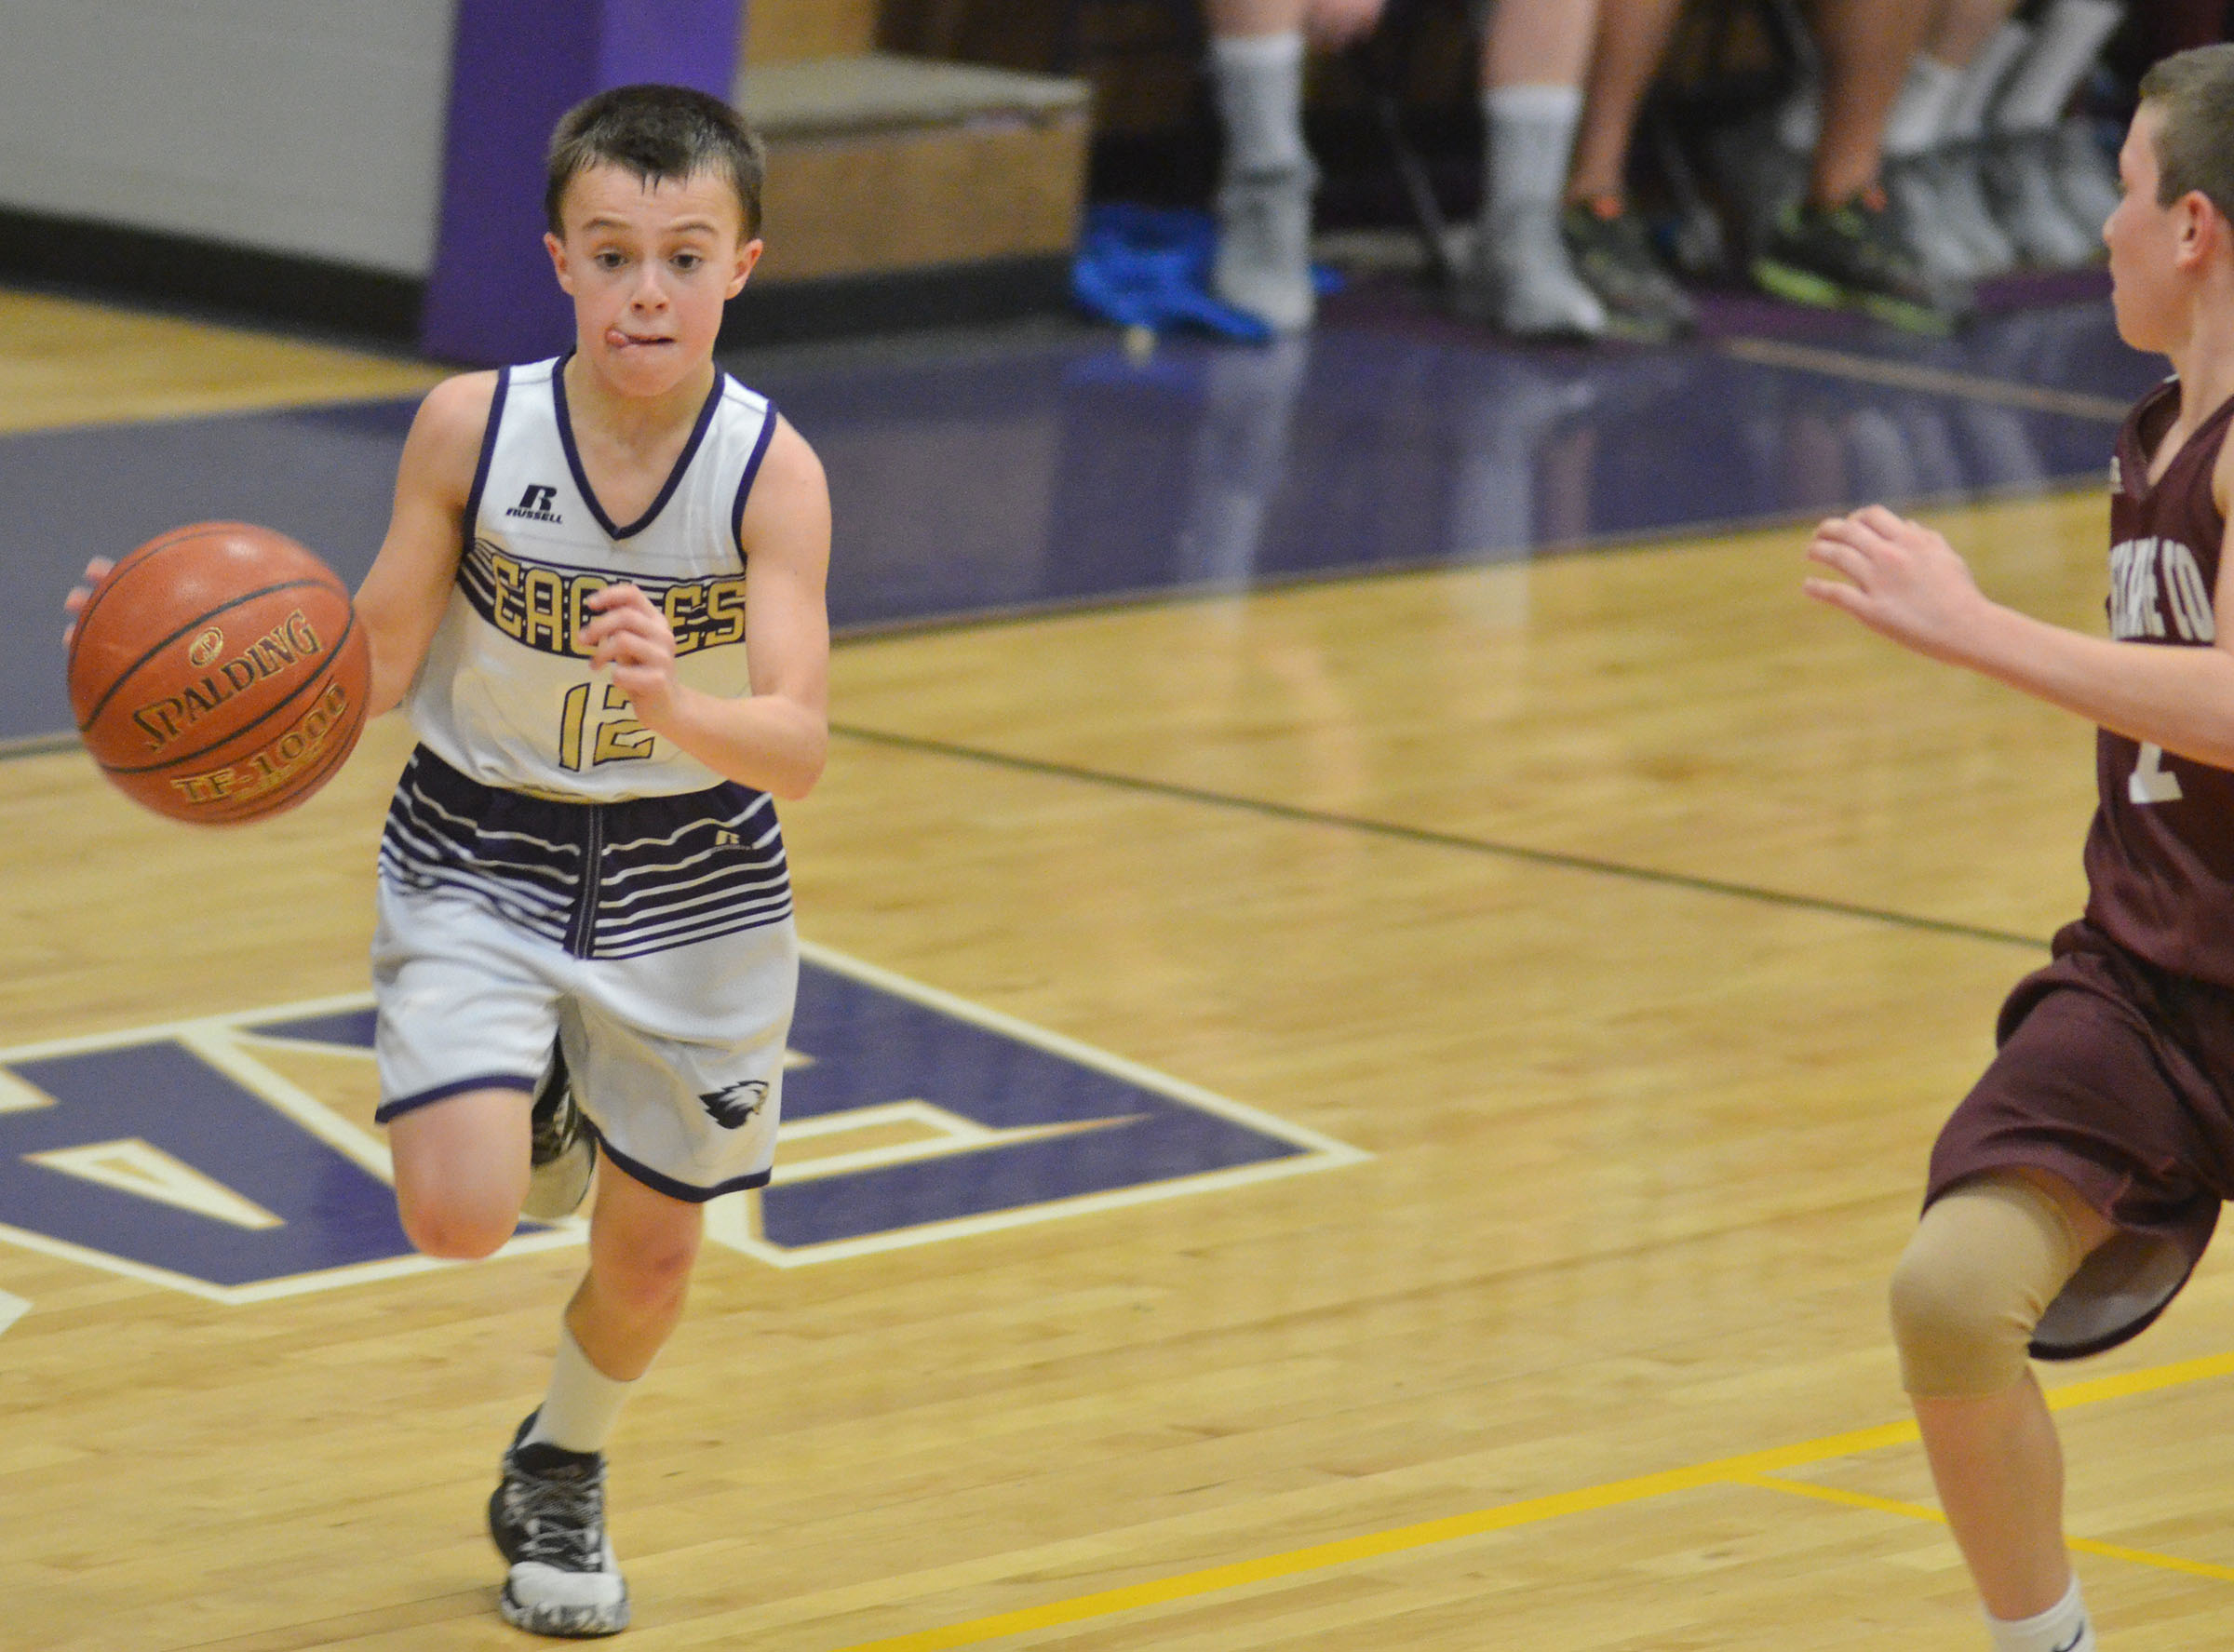 CMS sixth-grader Chase Hord dribbles to the hoop.